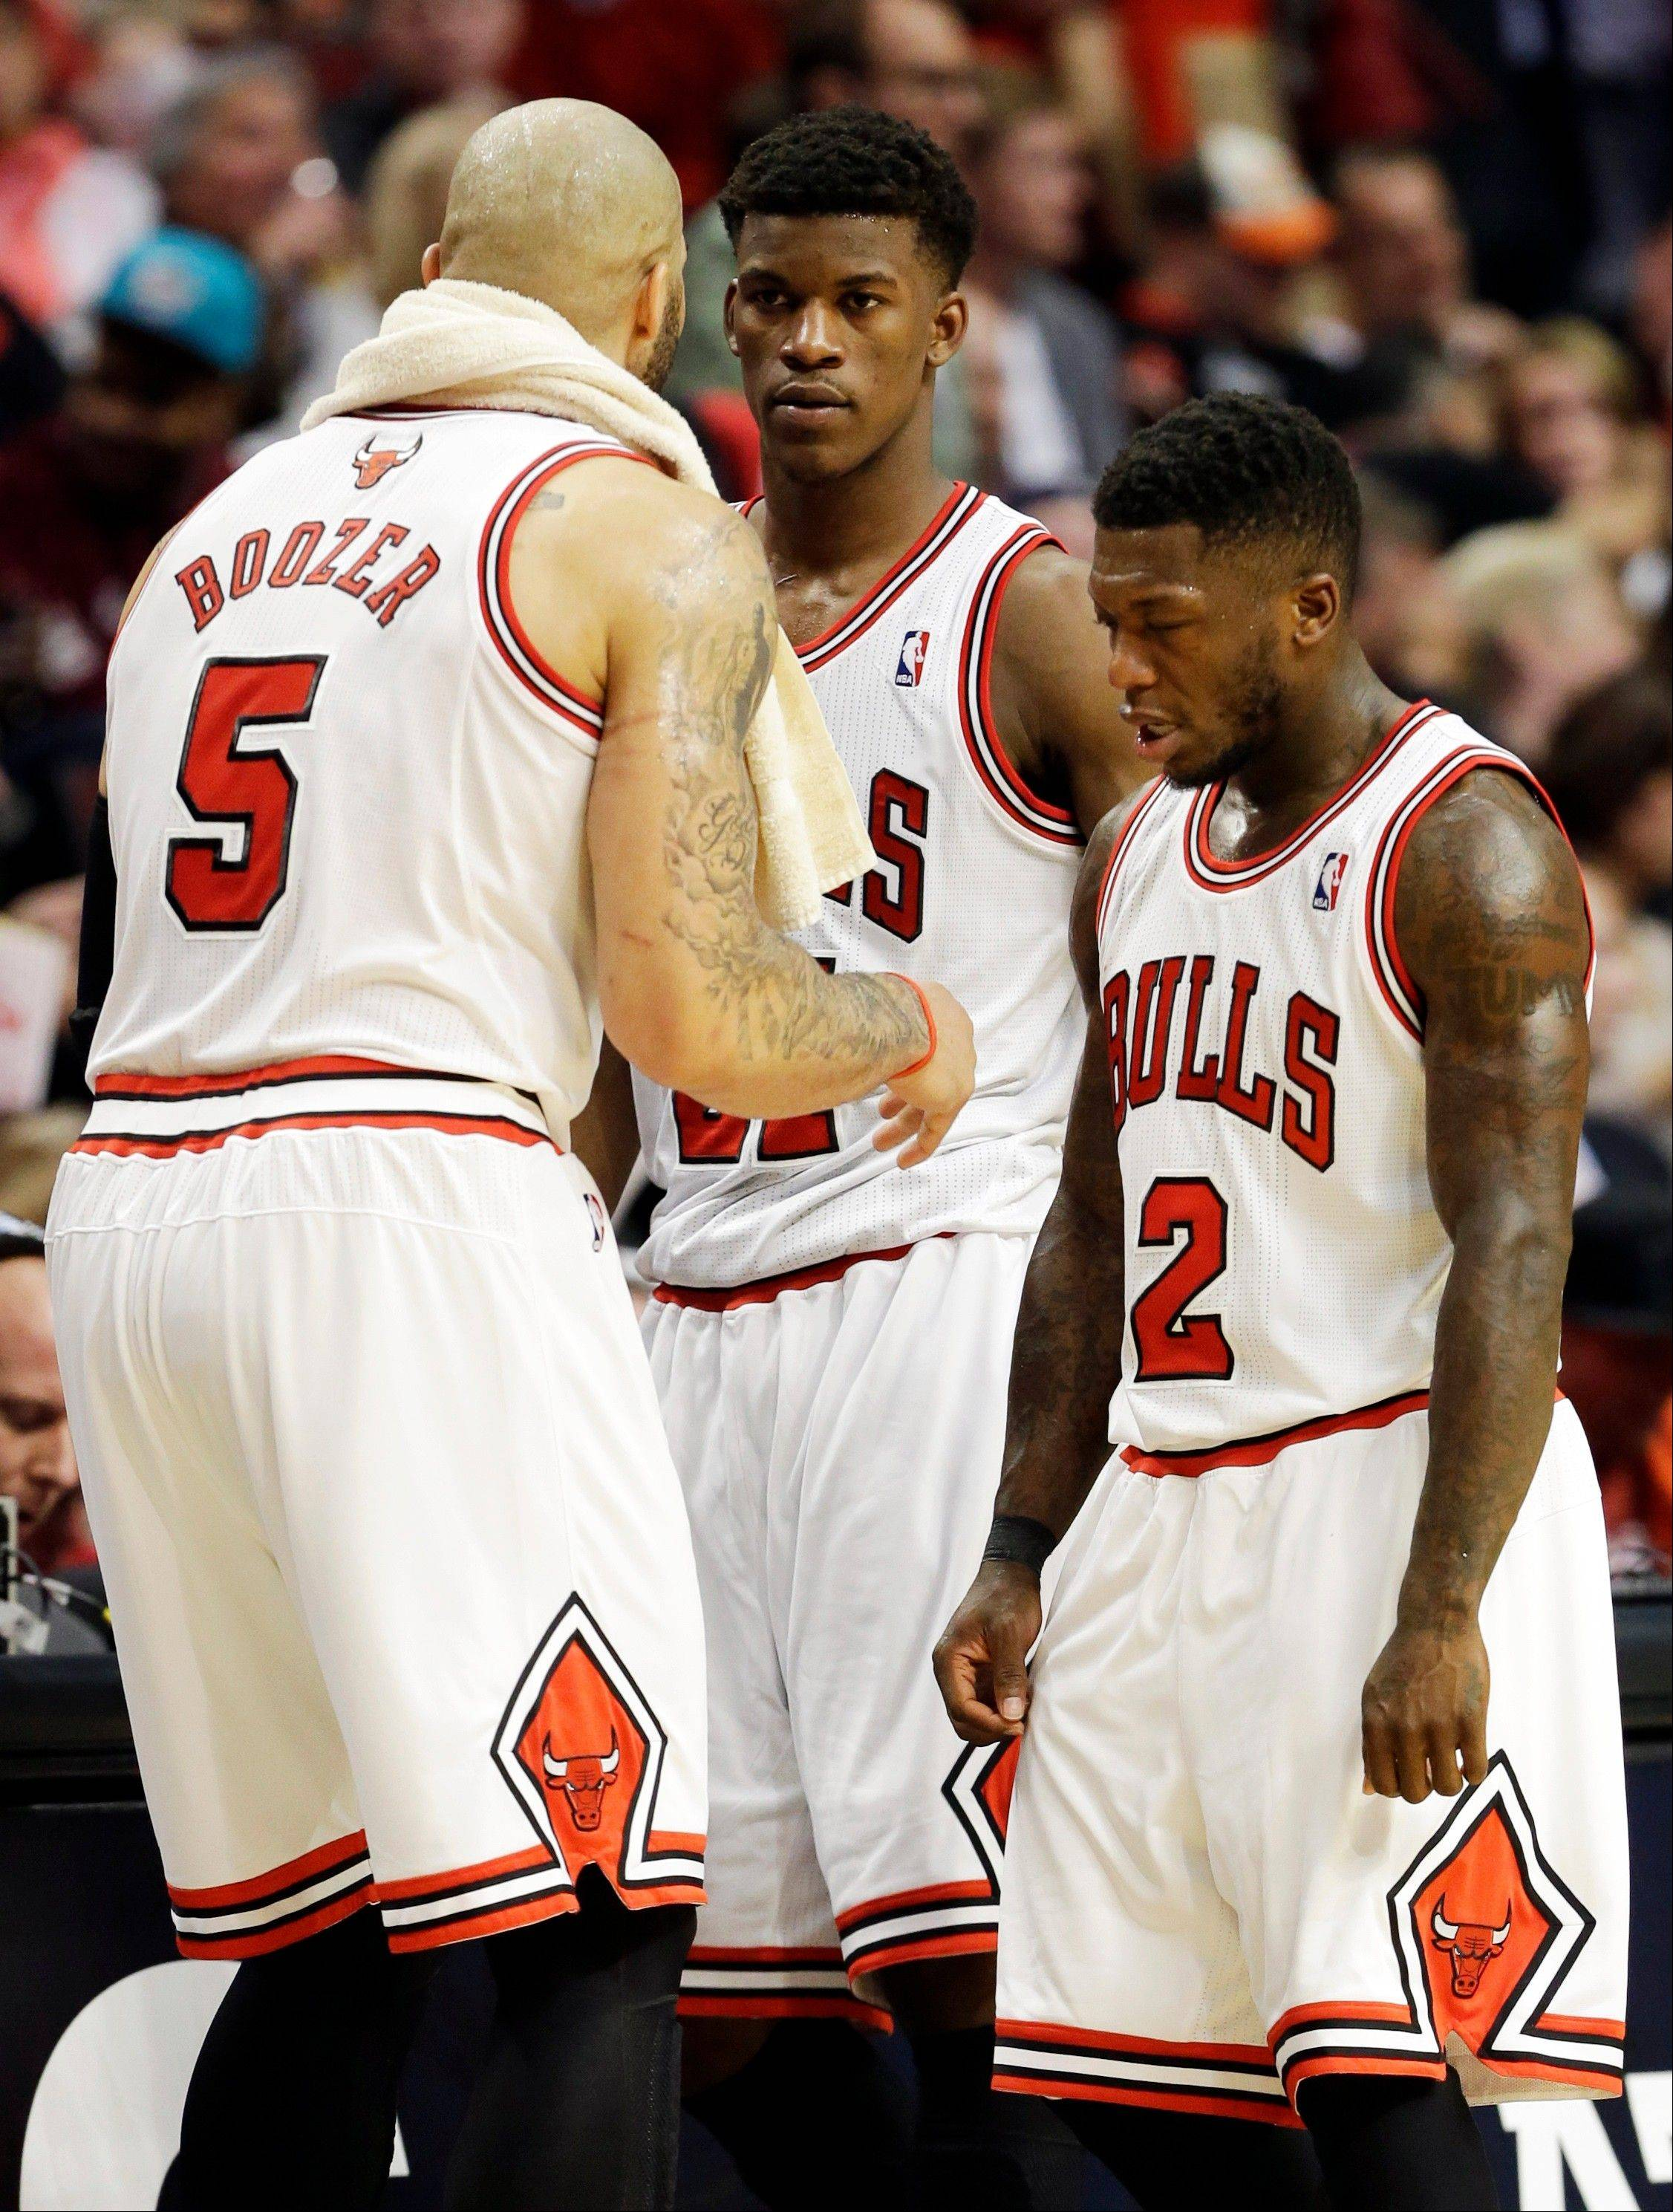 The Bulls' Carlos Boozer (5) talks to teammates Jimmy Butler (21) and Nate Robinson (2) during a timeout in the second half of the Game 5 loss to the Heat.